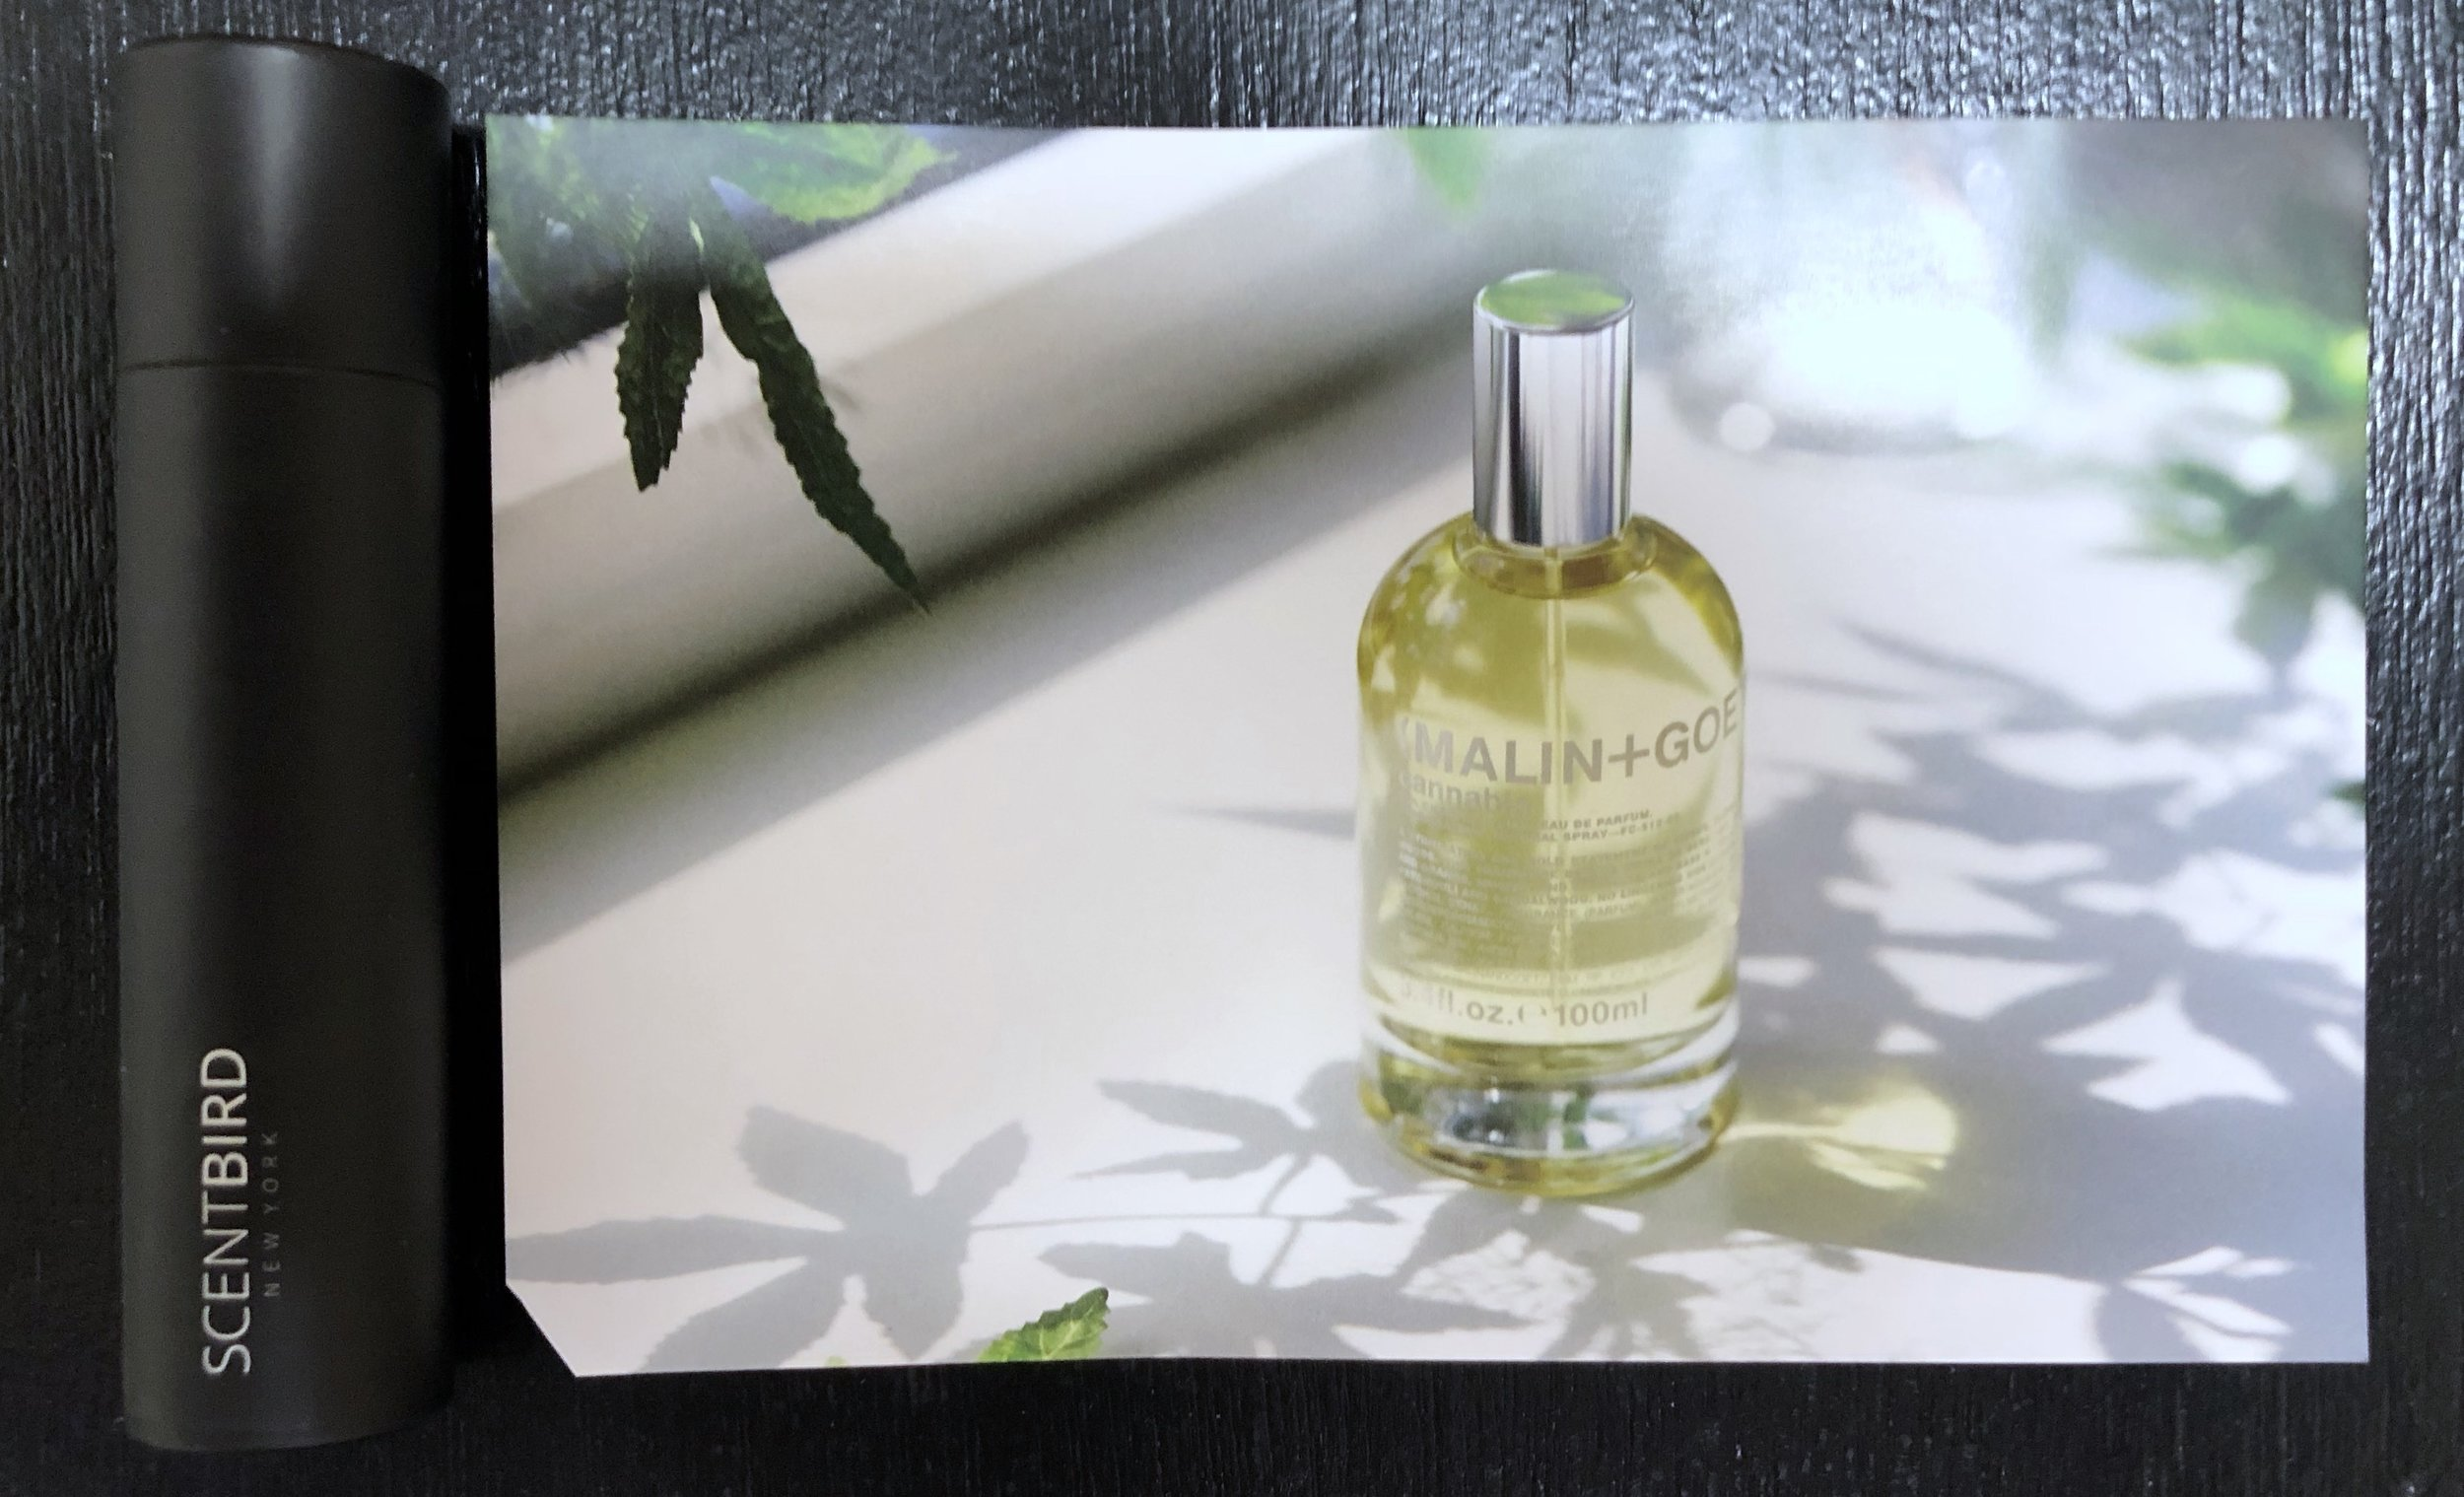 Each cologne comes with a little card explaining more about it